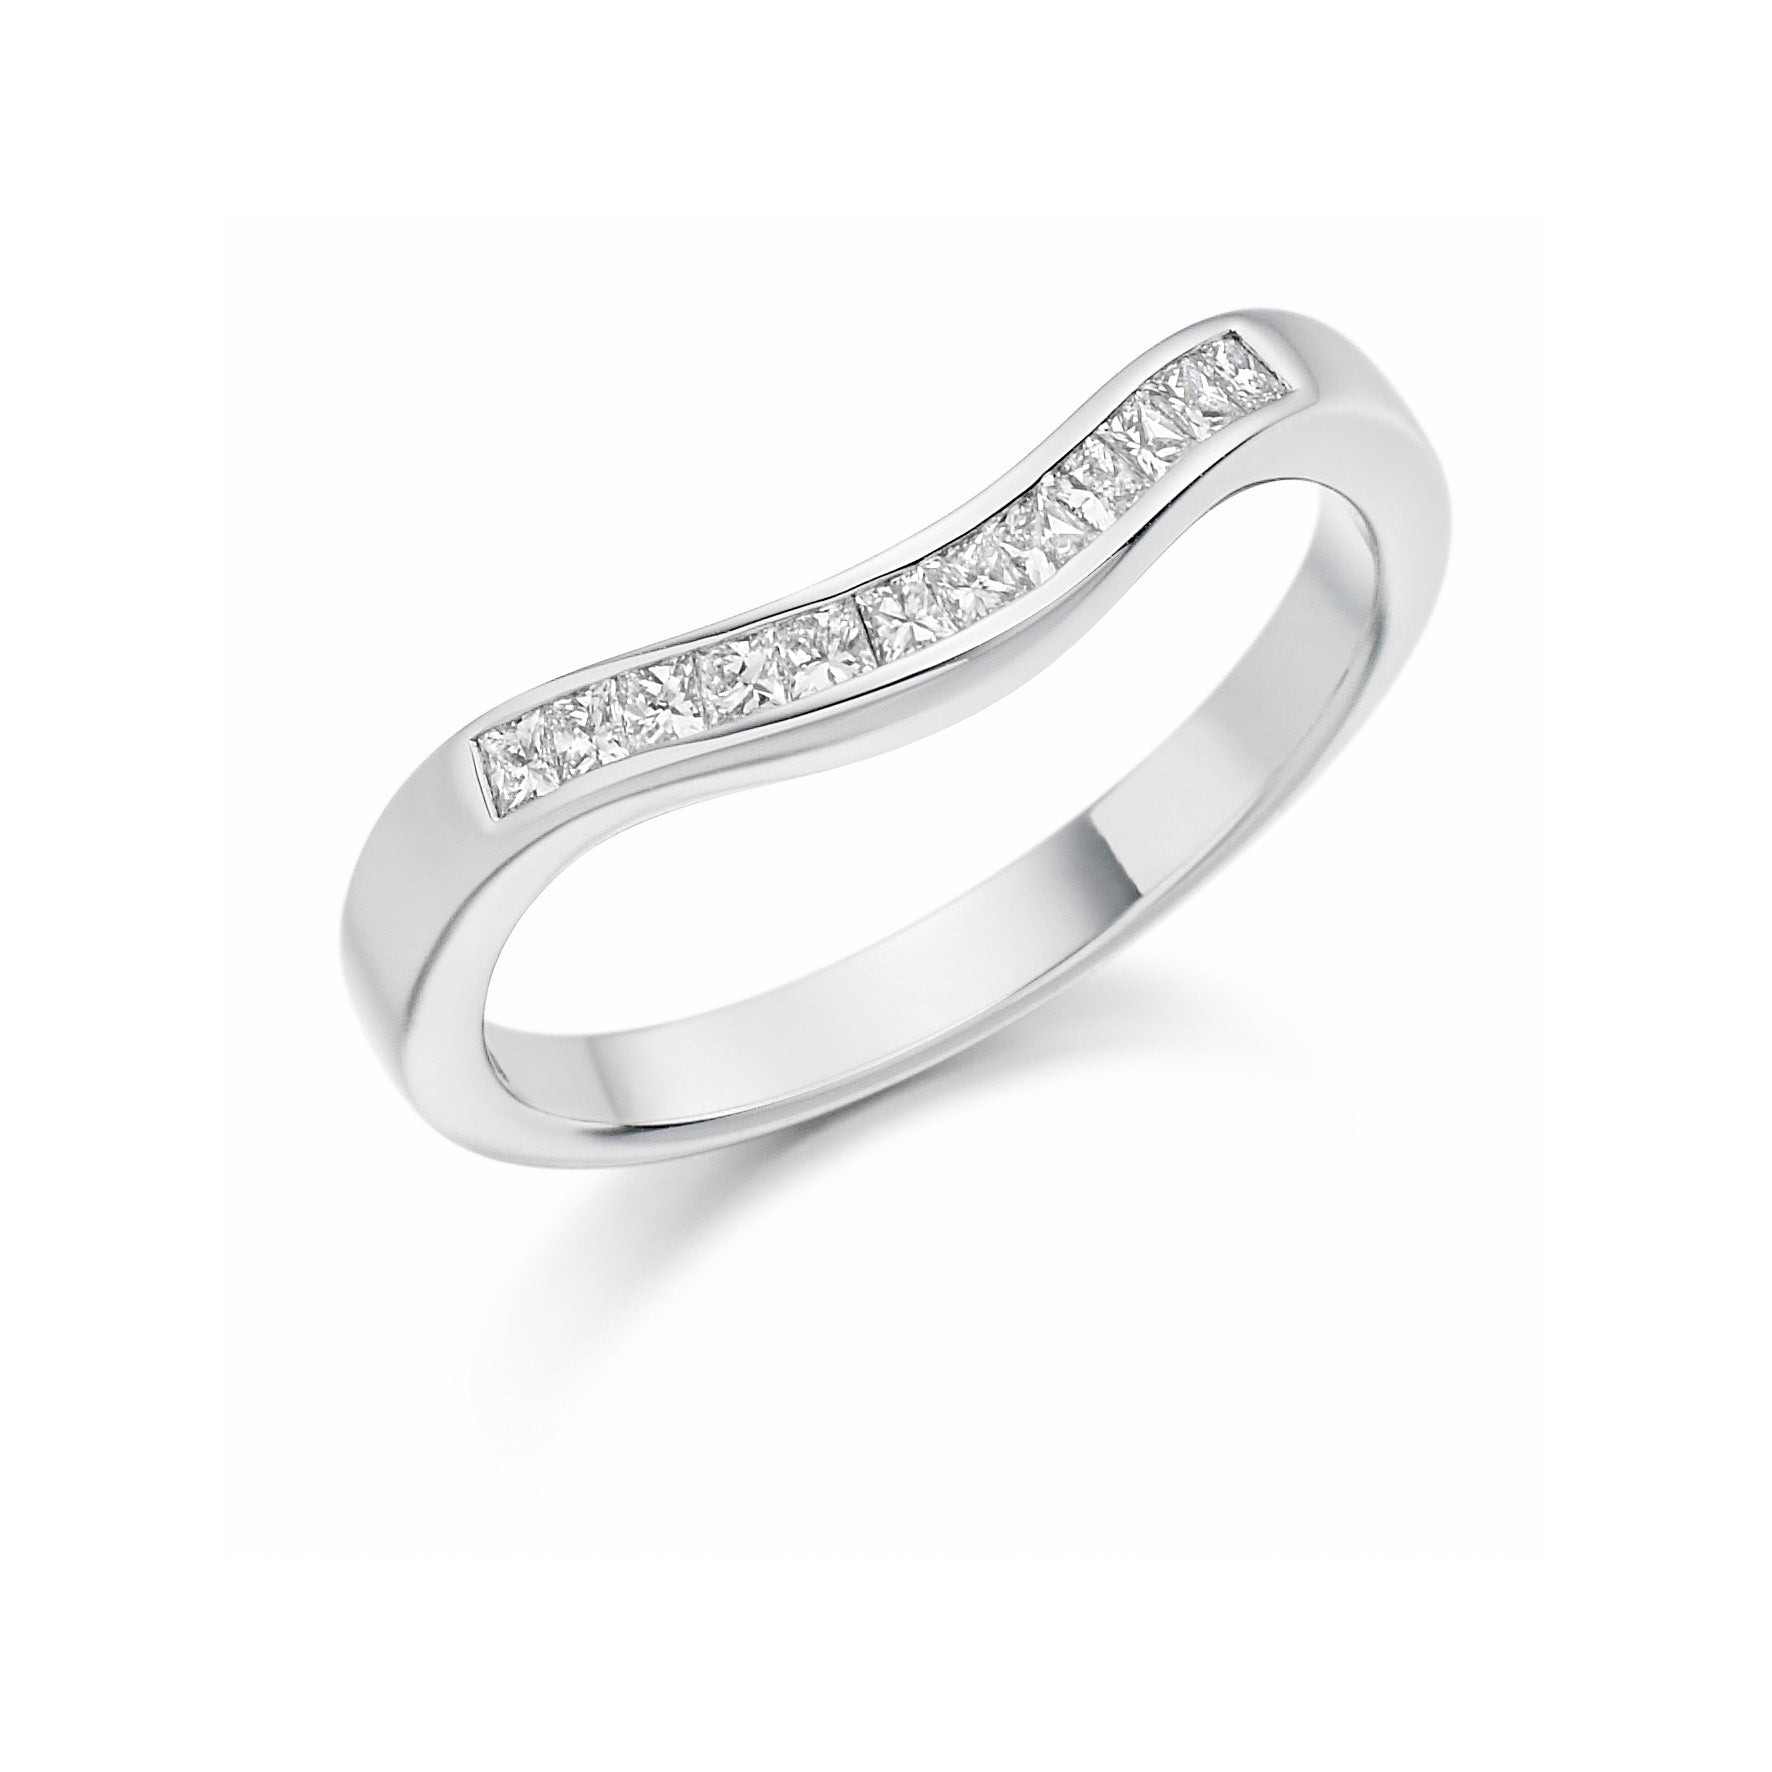 0.25ct Princess Cut Diamonds Curved Band Wedding Ring - (Home Try-On)